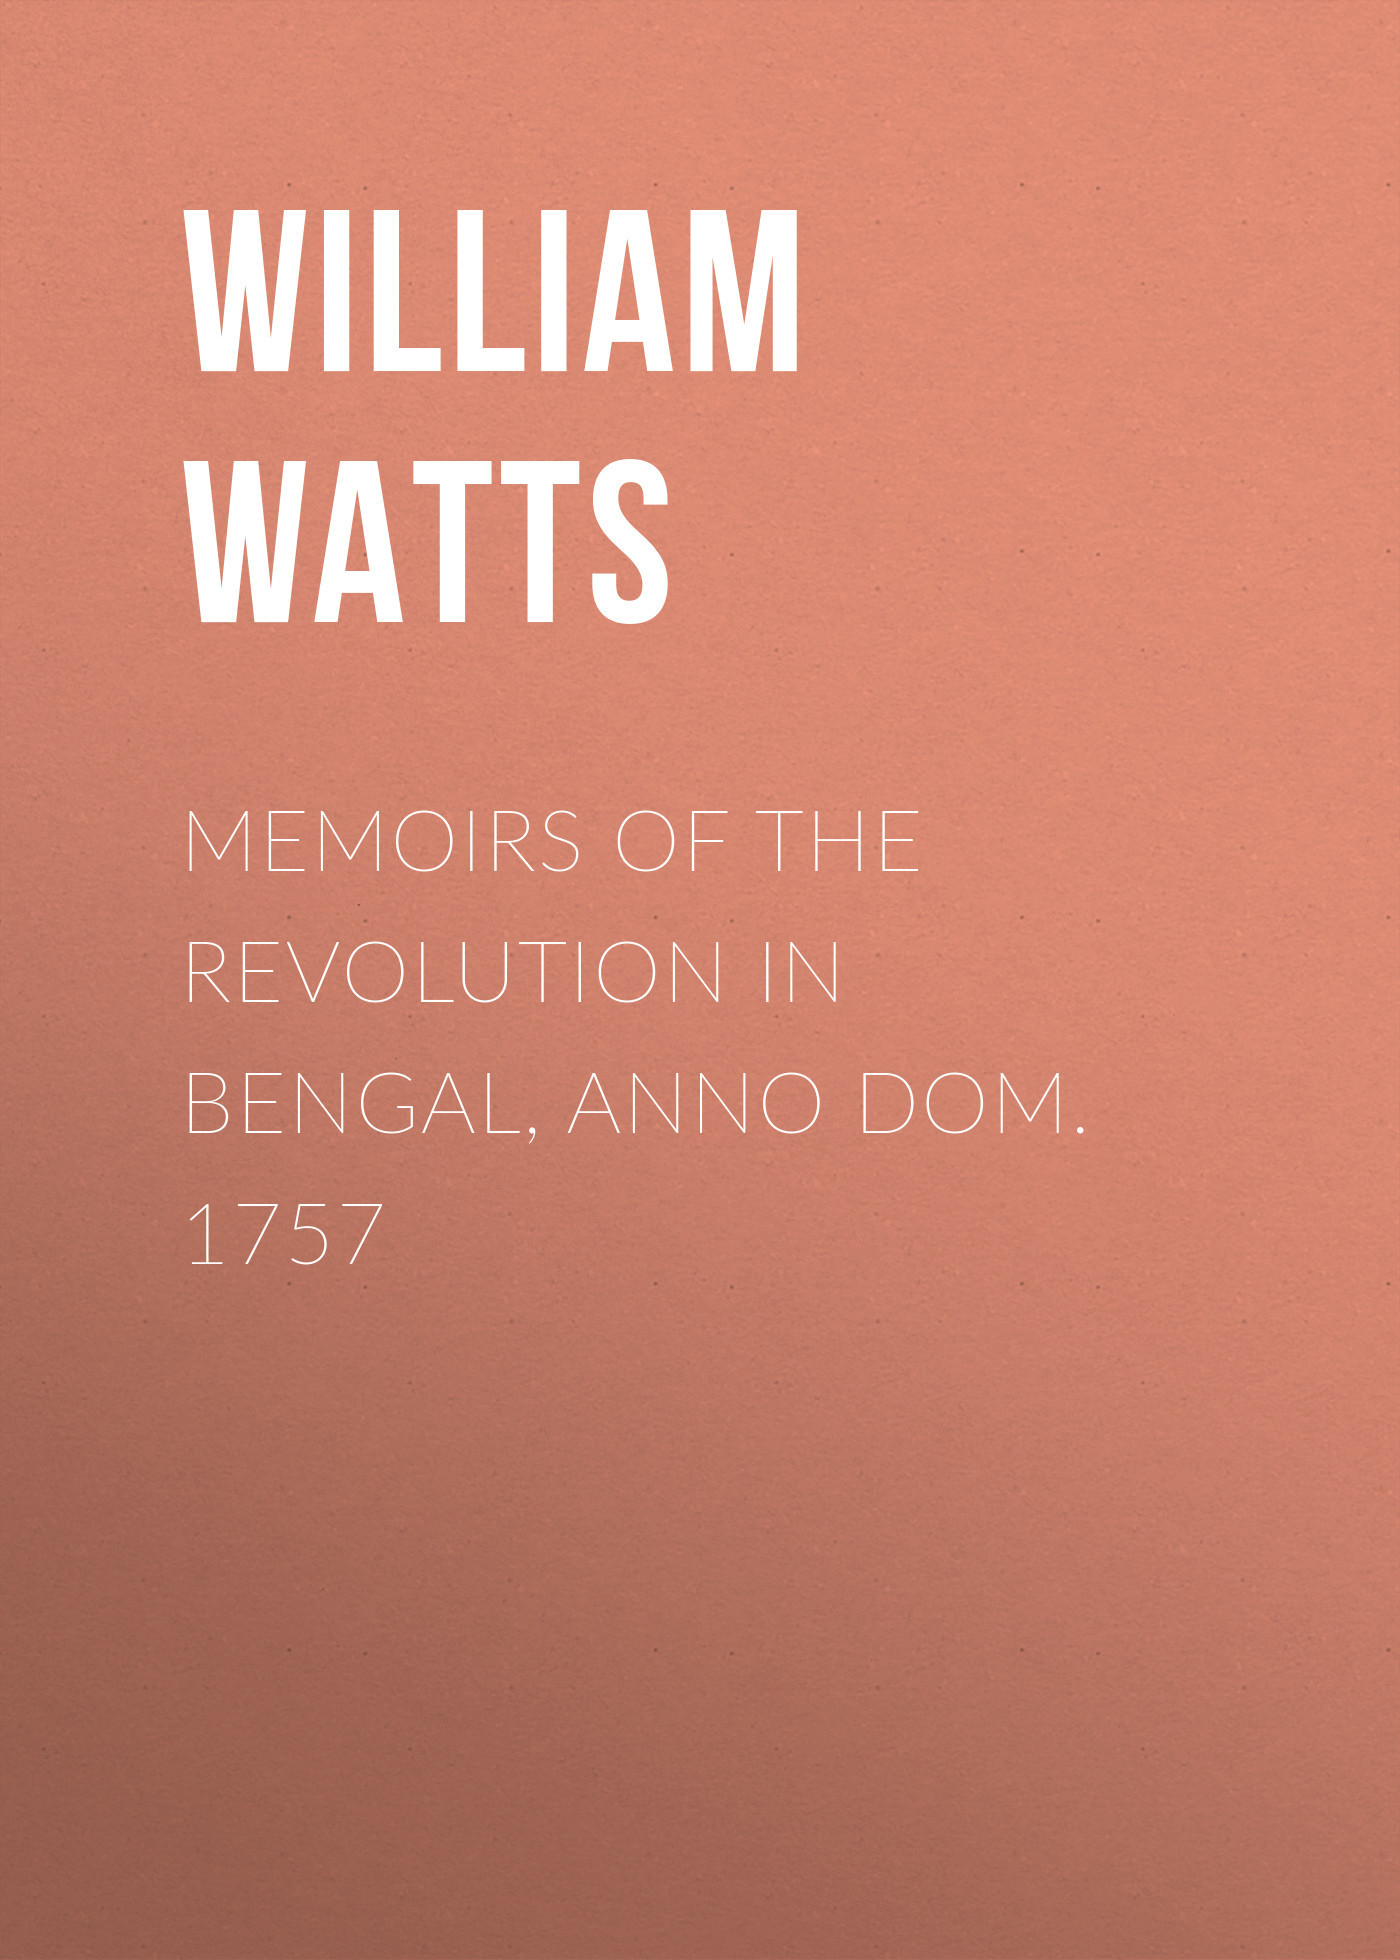 William Watts Memoirs of the Revolution in Bengal, Anno Dom. 1757 migration of labour in west bengal districts 1991 2001